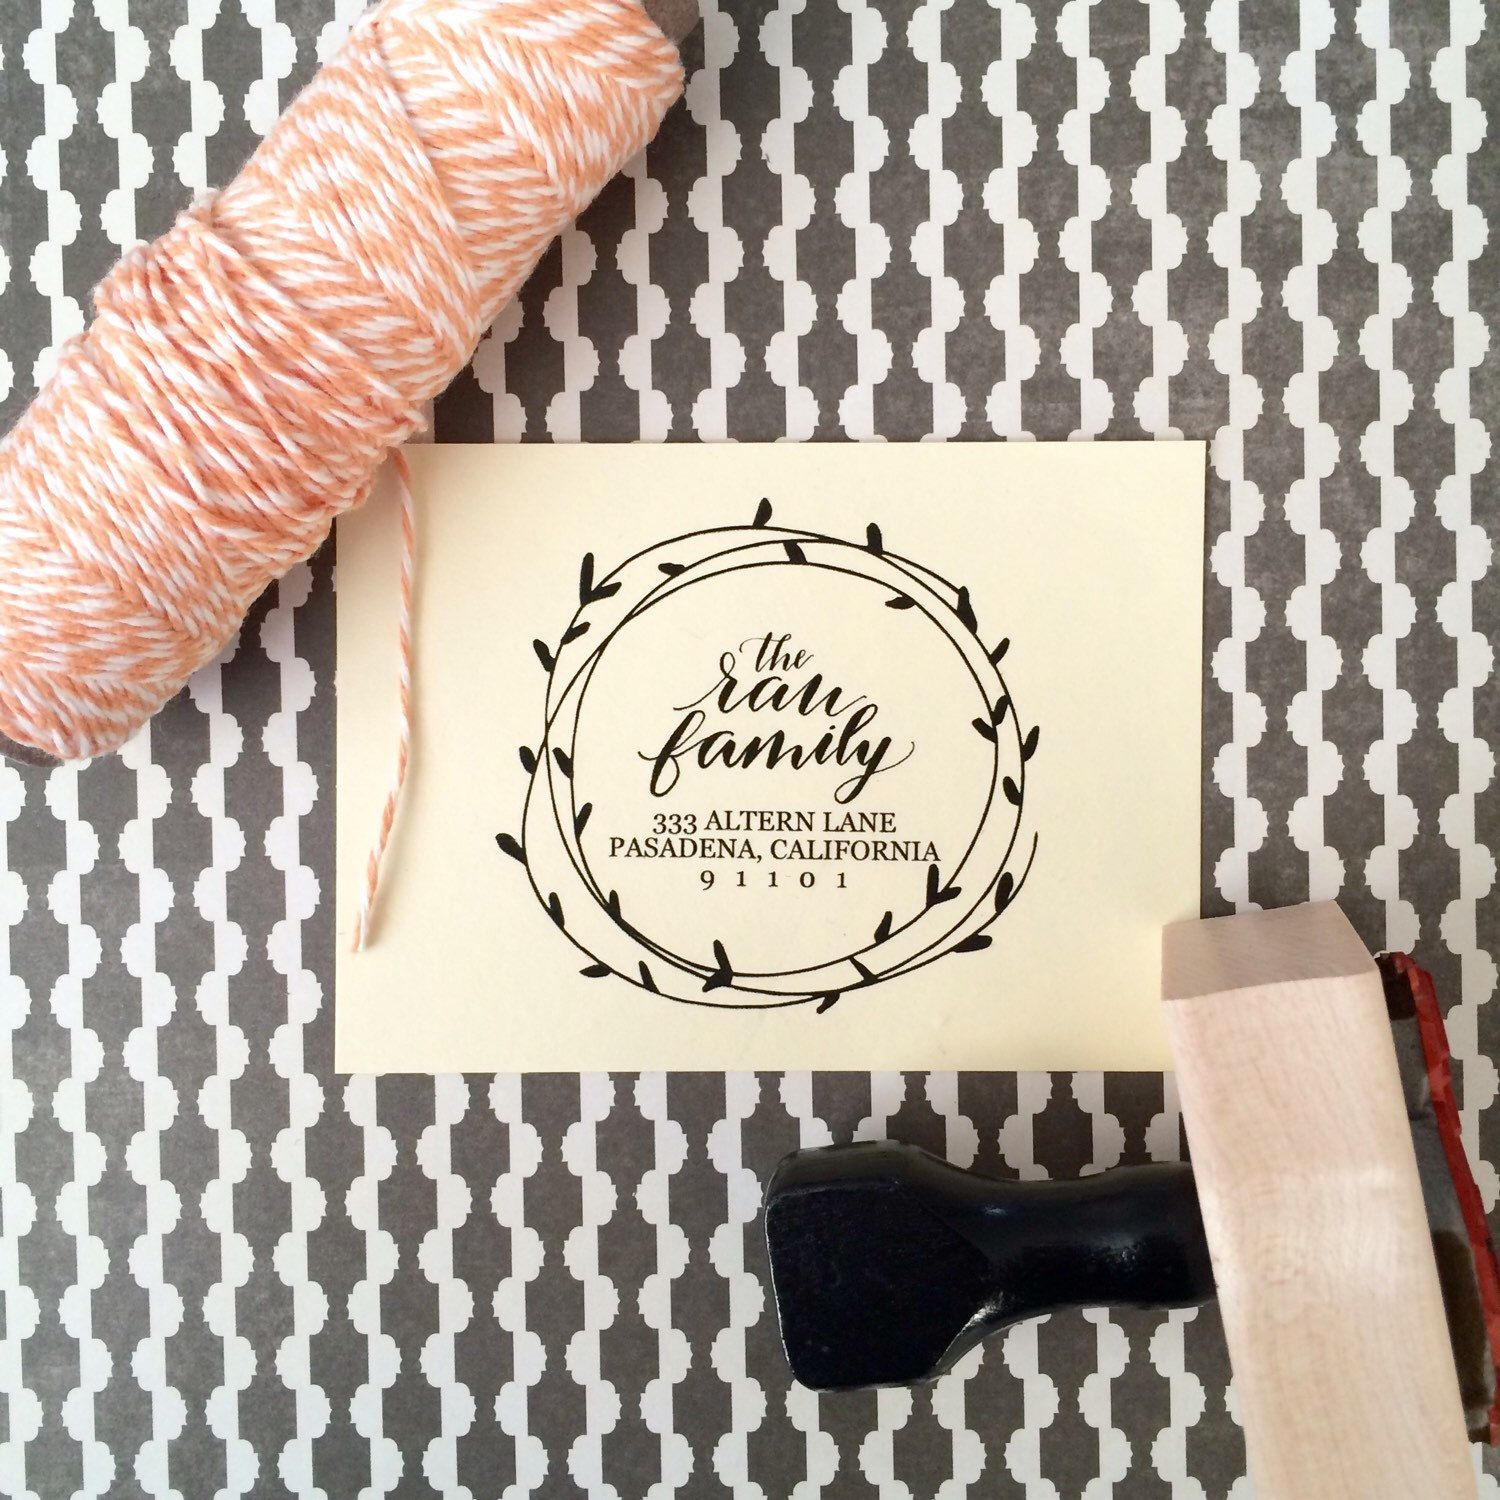 Address Stamp / Calligraphy Stamp / Wedding Stamp / Wedding Invitations / Housewarming Gift / Christmas Stamp / Save the Date / Wreath Stamp by SugarAndChicShop on Etsy https://www.etsy.com/listing/203914298/address-stamp-calligraphy-stamp-wedding